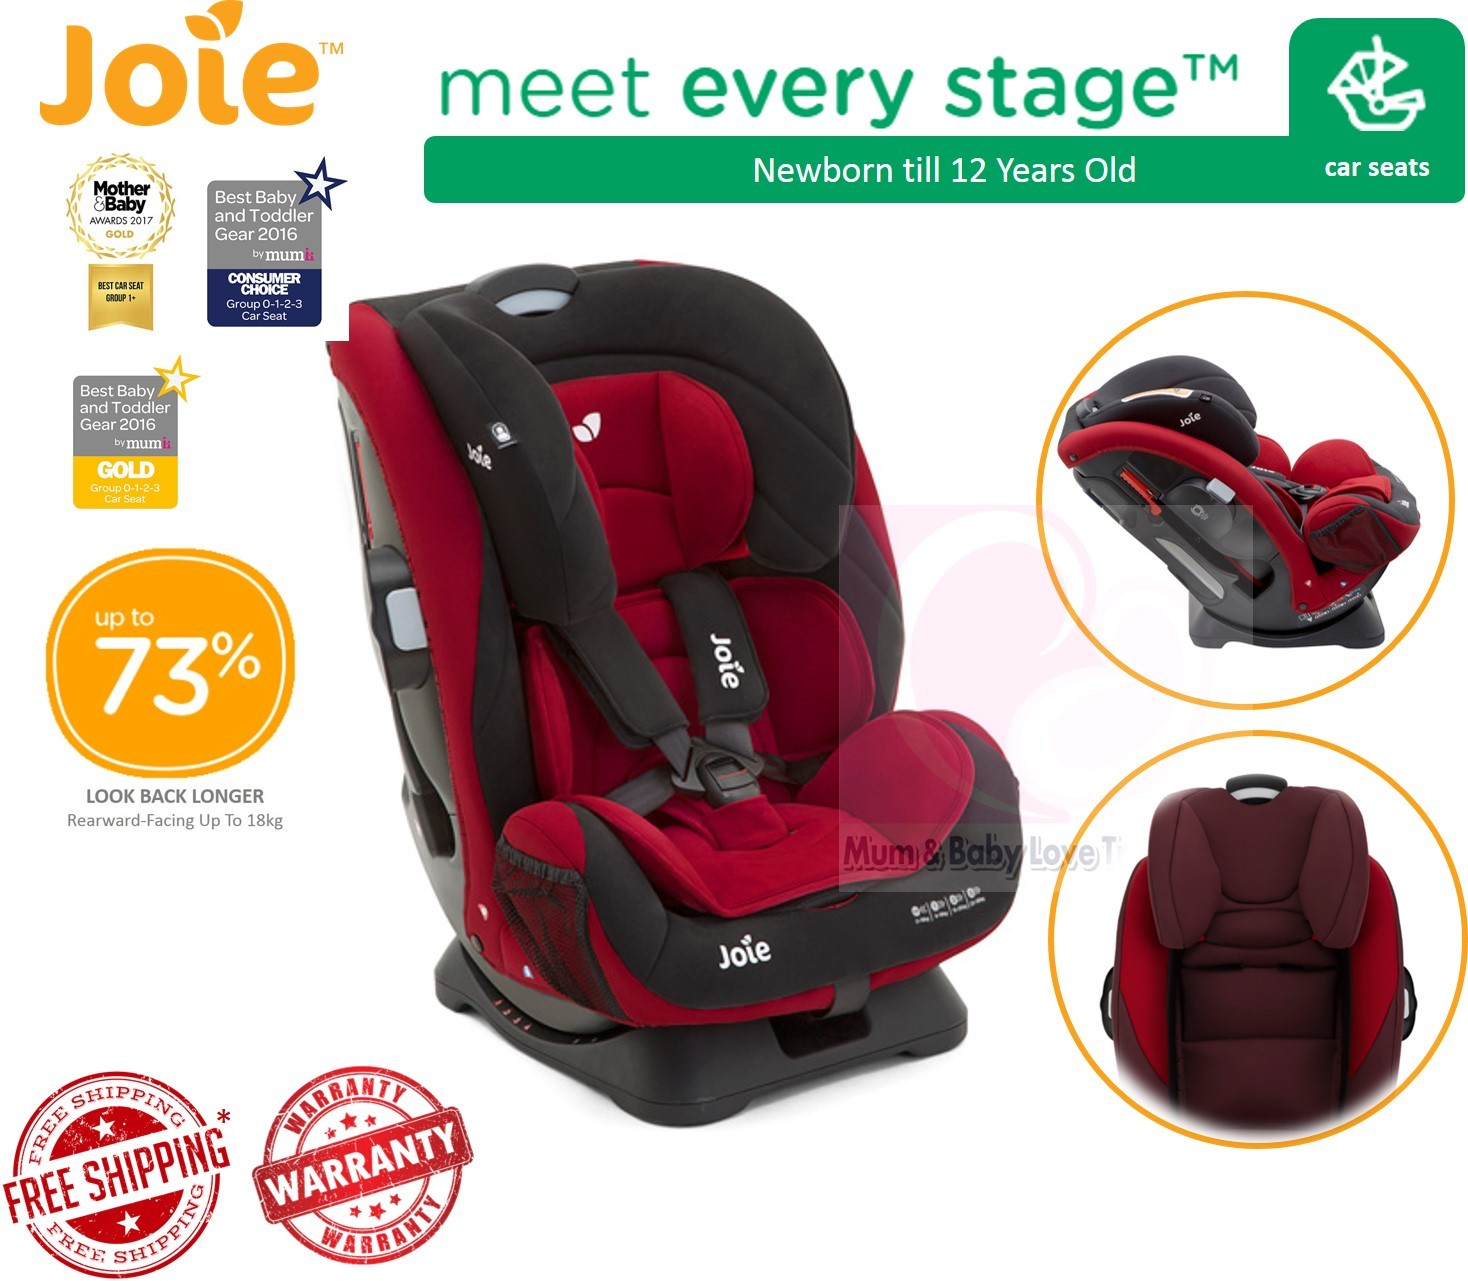 Joie Baby Car Seat Usa Joie Every Stage Convertible Baby Car Seat Newborn Till